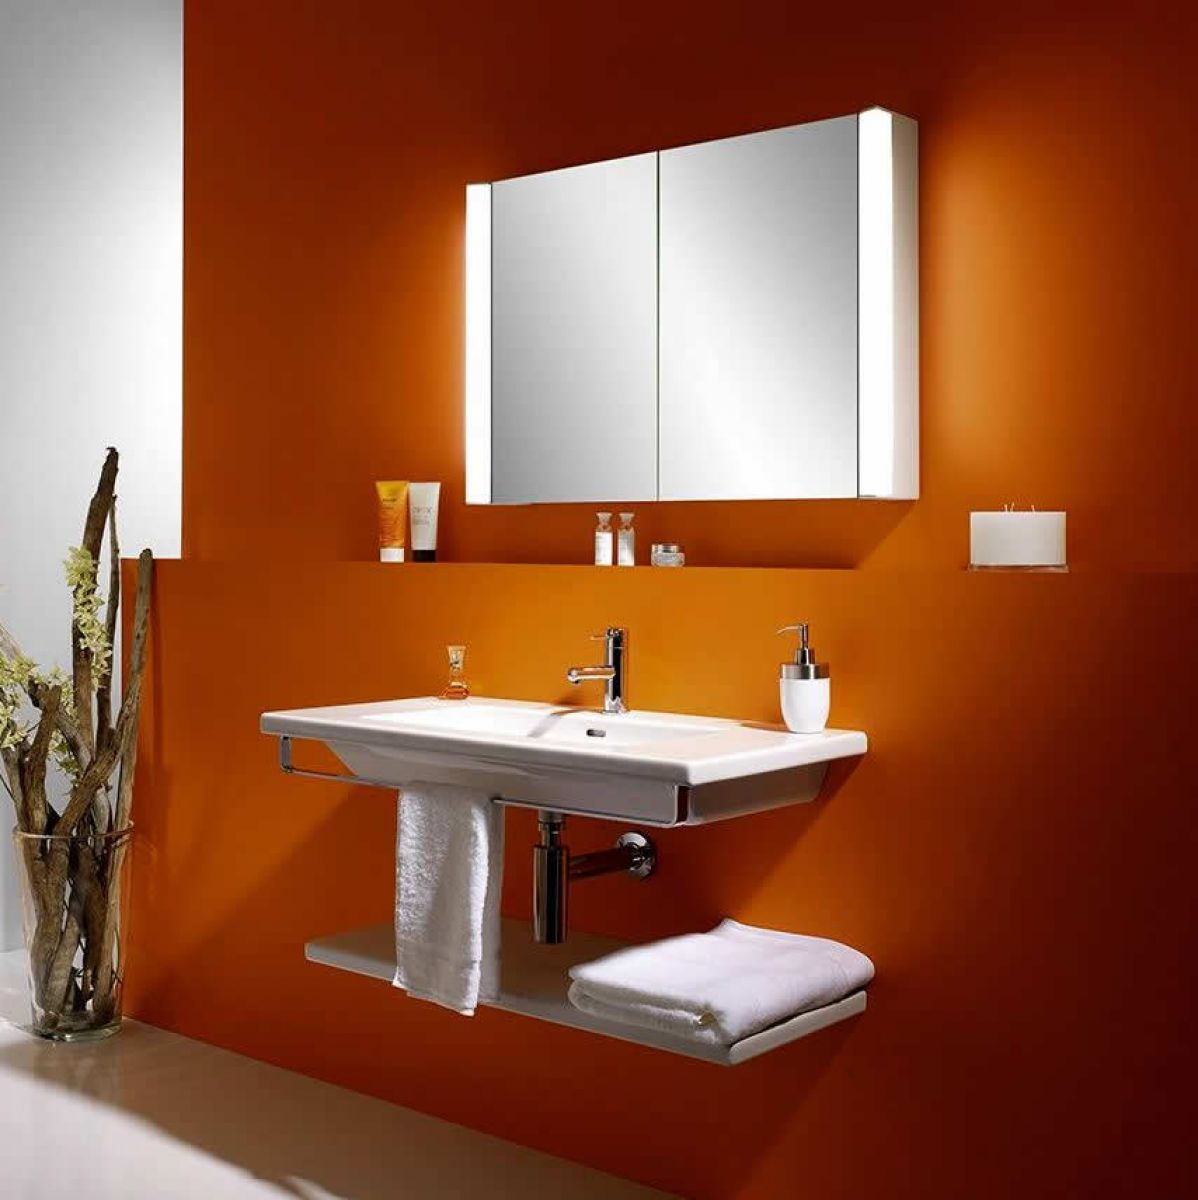 schneider moanaline mirror cabinet with overhead light uk bathrooms